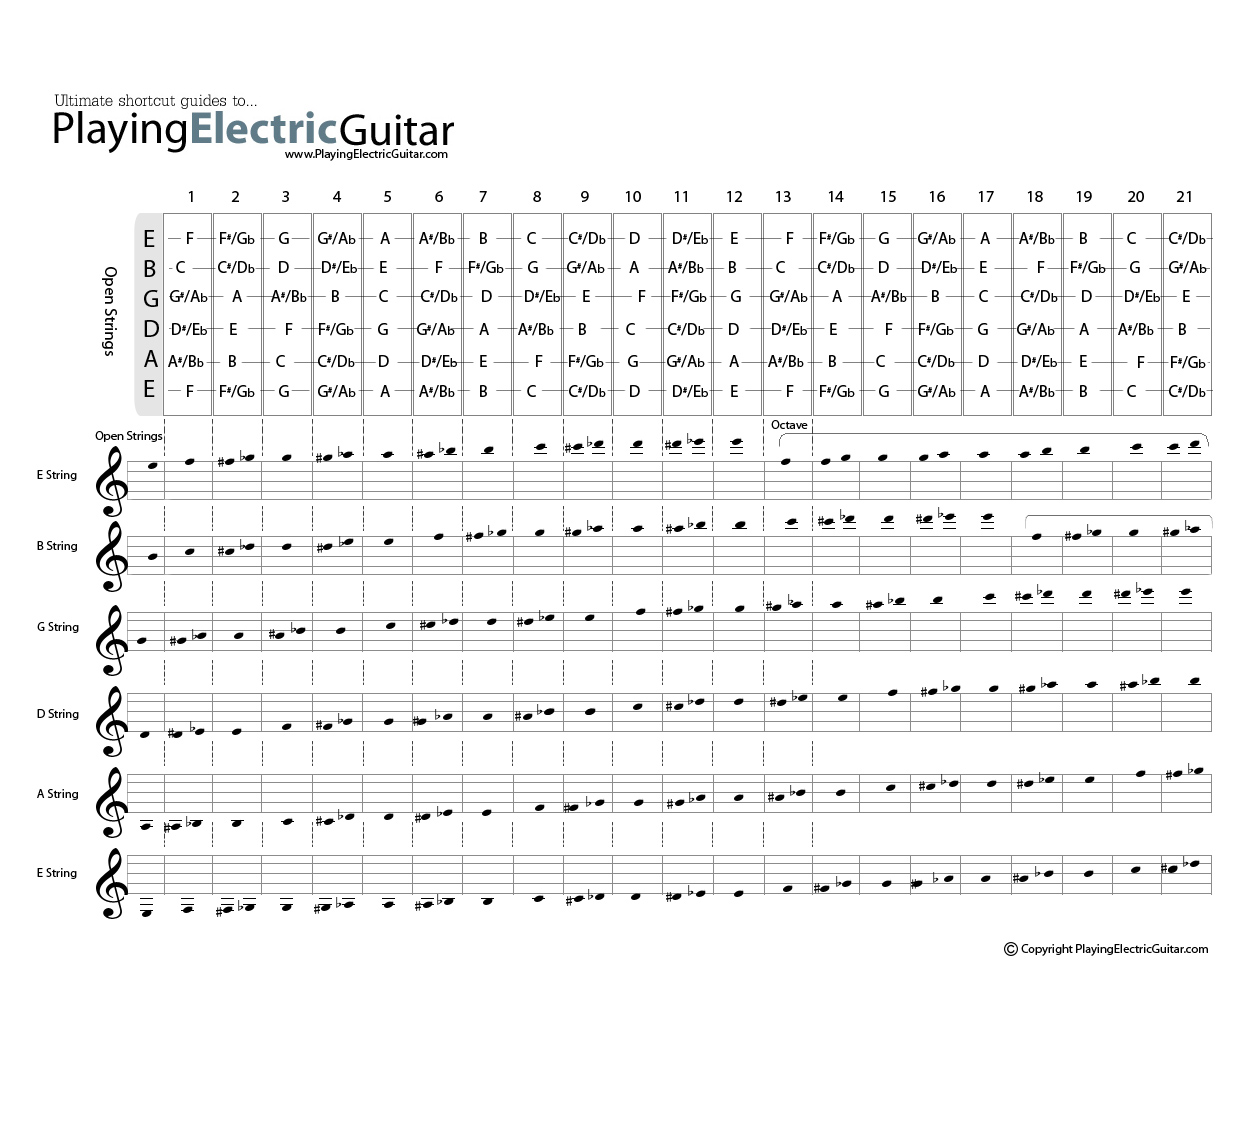 photograph about Printable Fretboard titled Guitar Fretboard Notes - Guitar Fretboard Chart